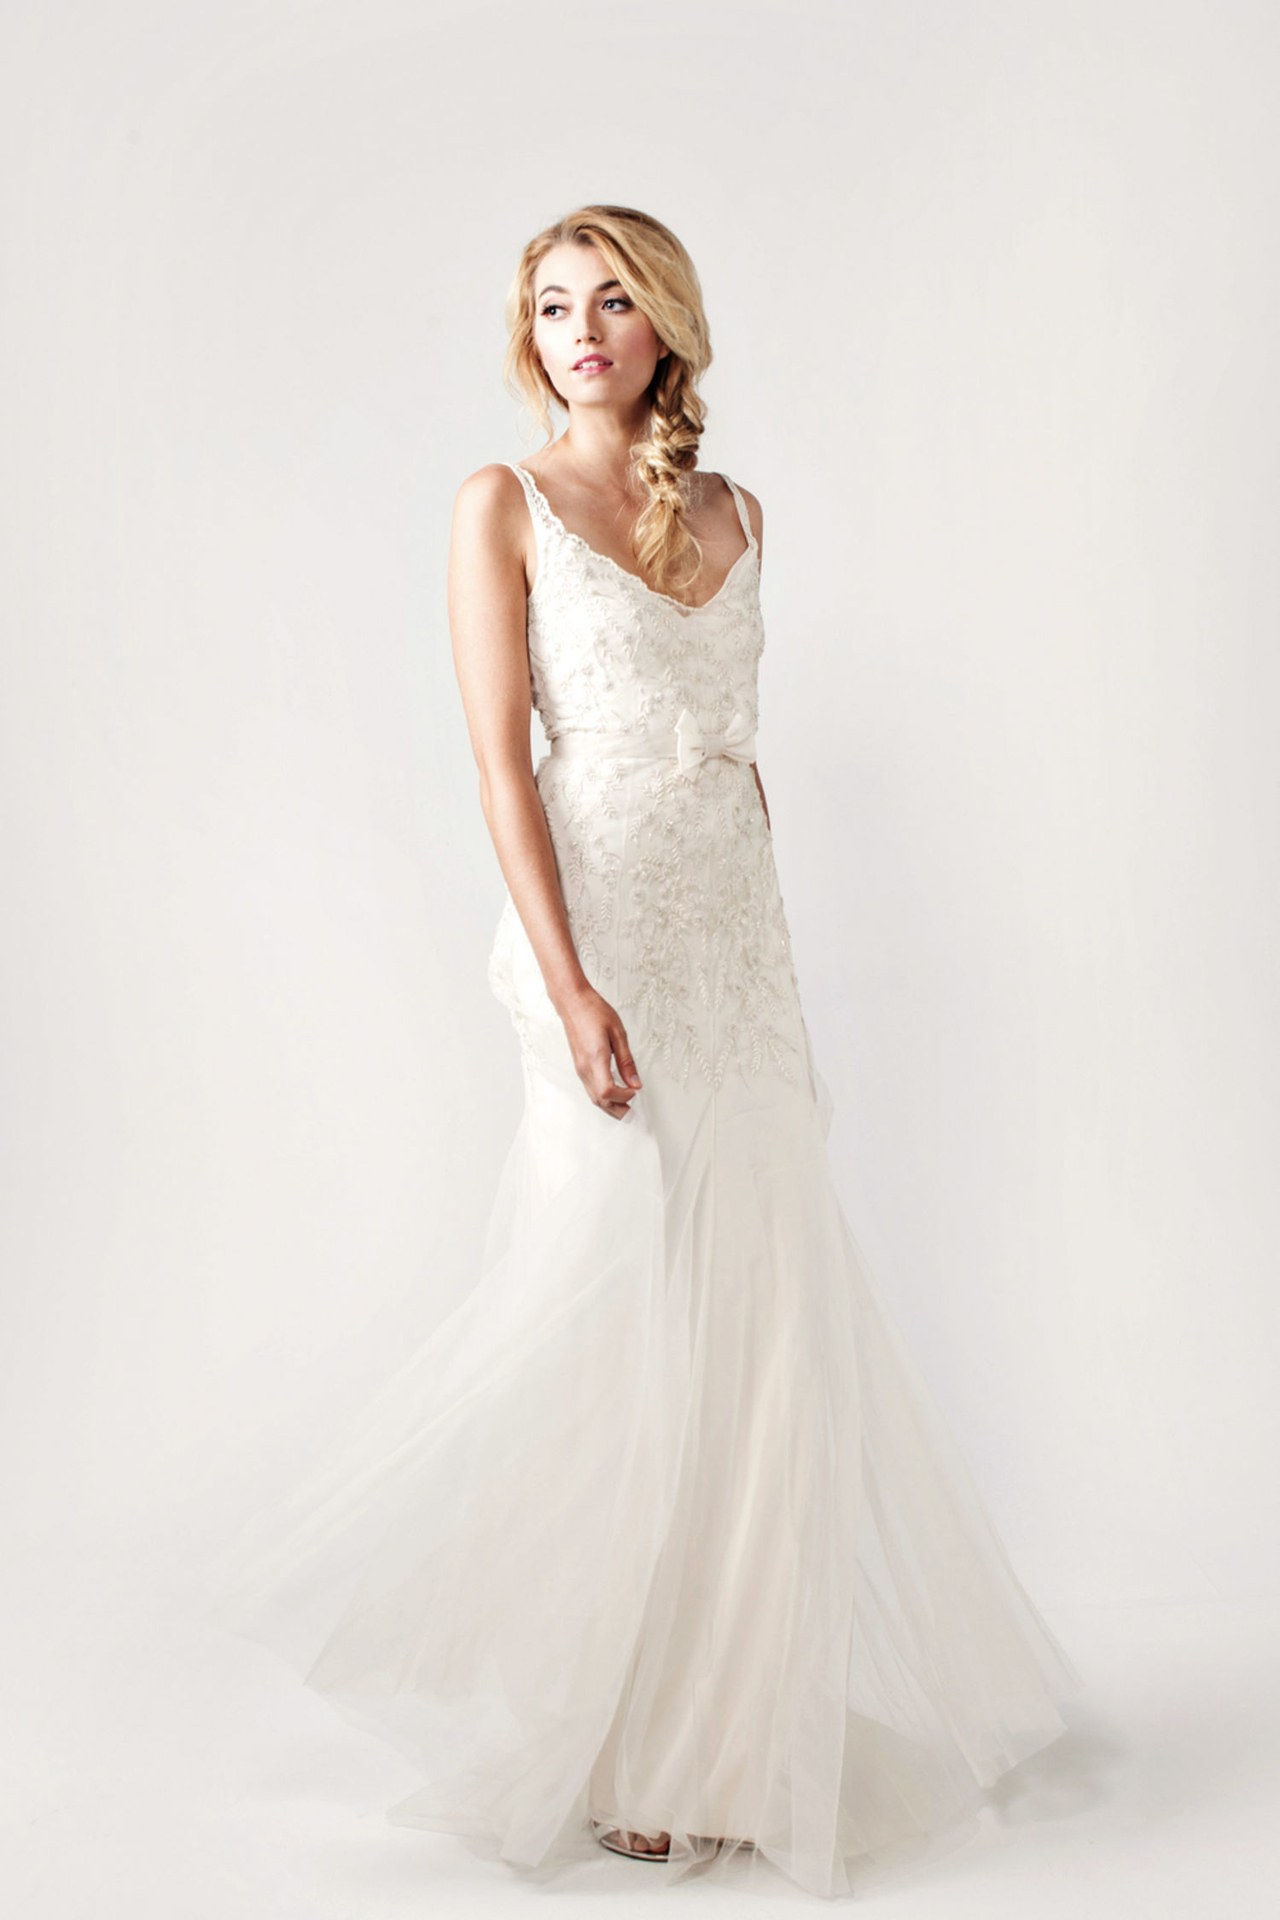 7 f sarah janks wedding dresses wedding gowns 0217 courtesy